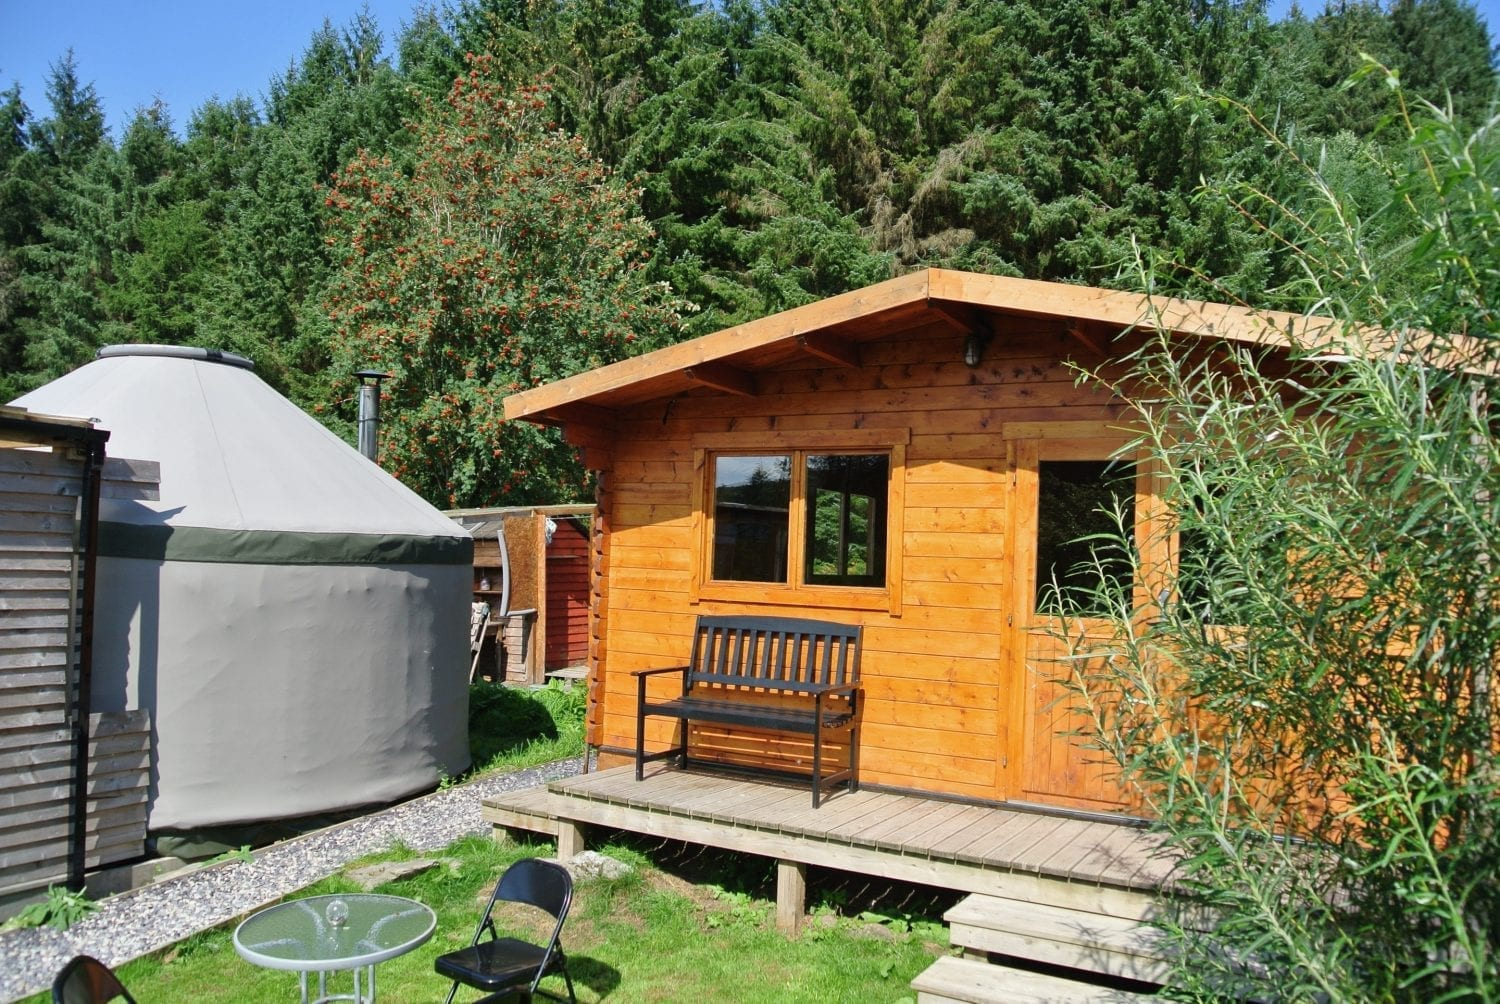 Ty log fully equipped kitchen and bathroom